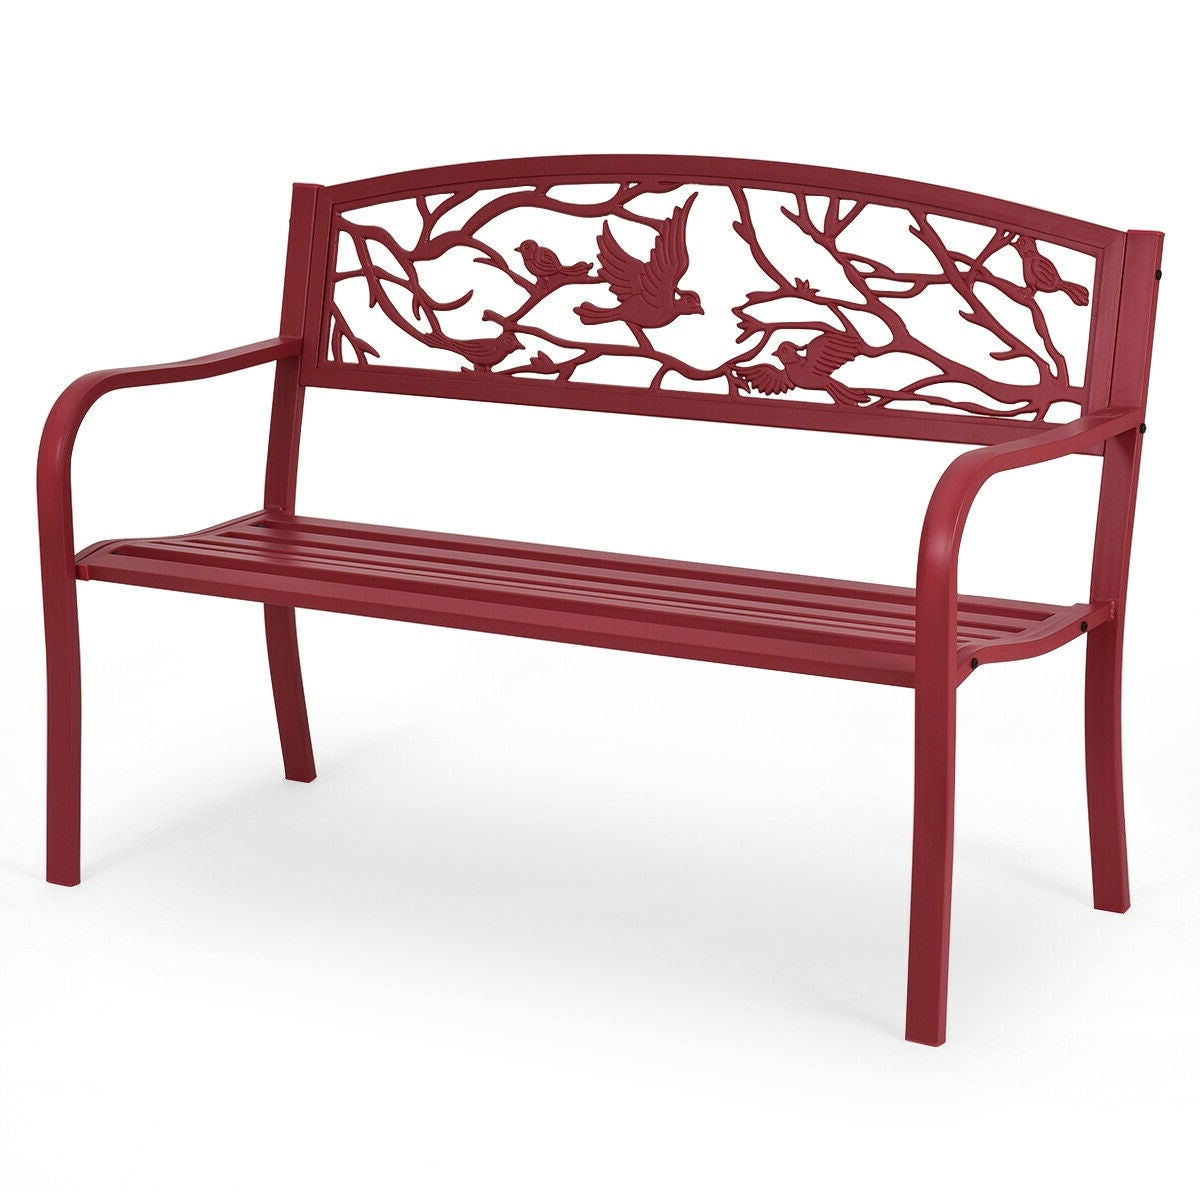 Iron Grove Slatted Glider Benches For Famous Costway Patio Garden Bench Park Yard Outdoor Furniture Cast Iron Porch Chair Red (View 24 of 30)